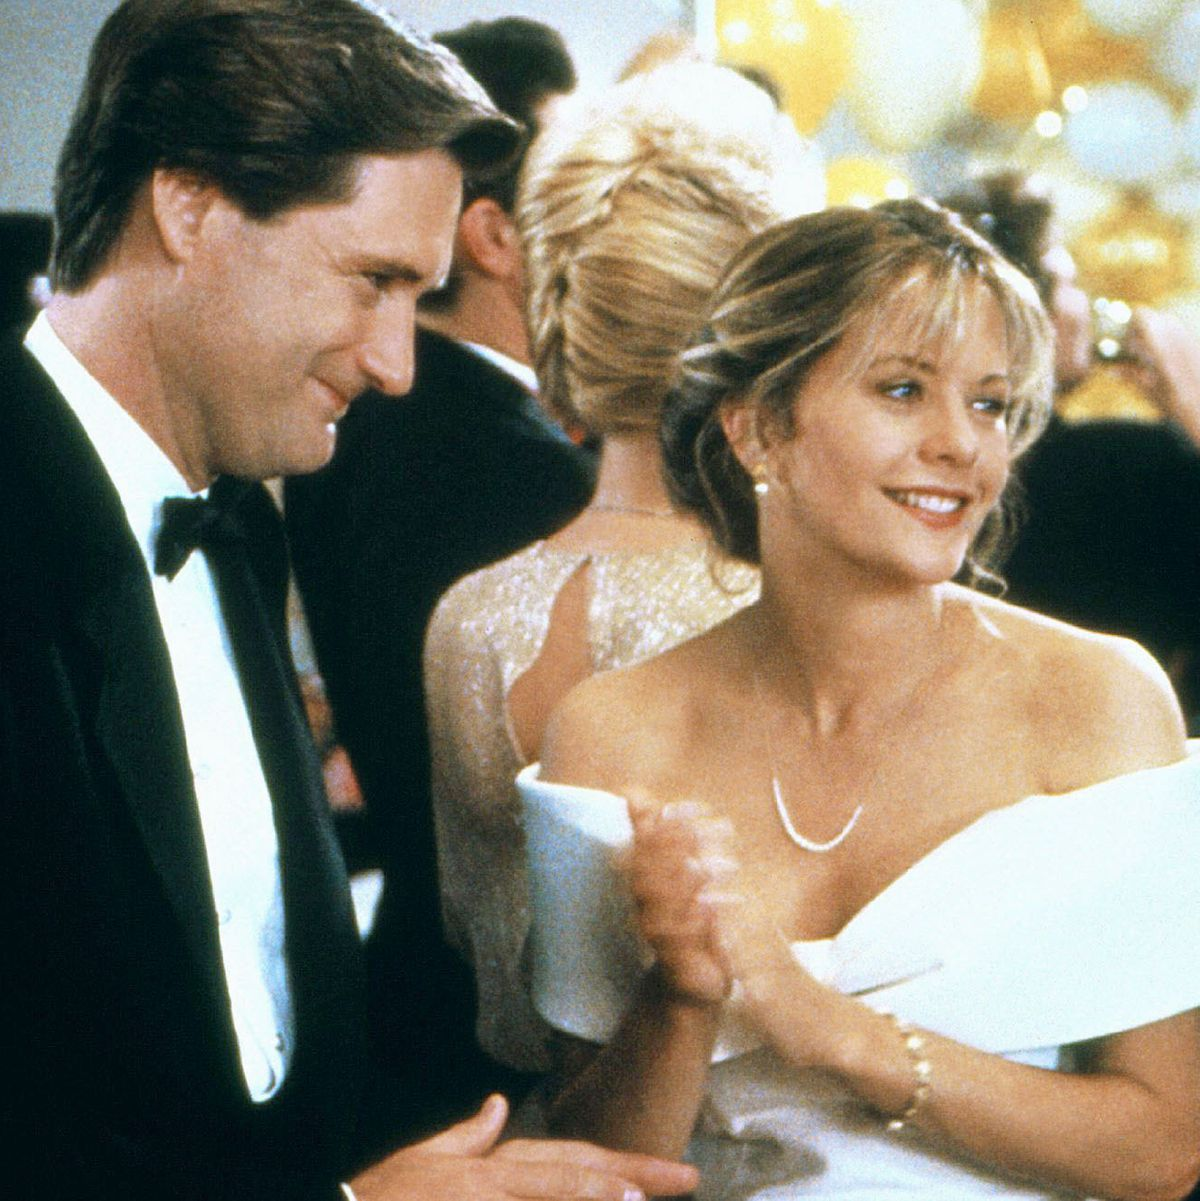 mr2 20 Things You Never Knew About Meg Ryan